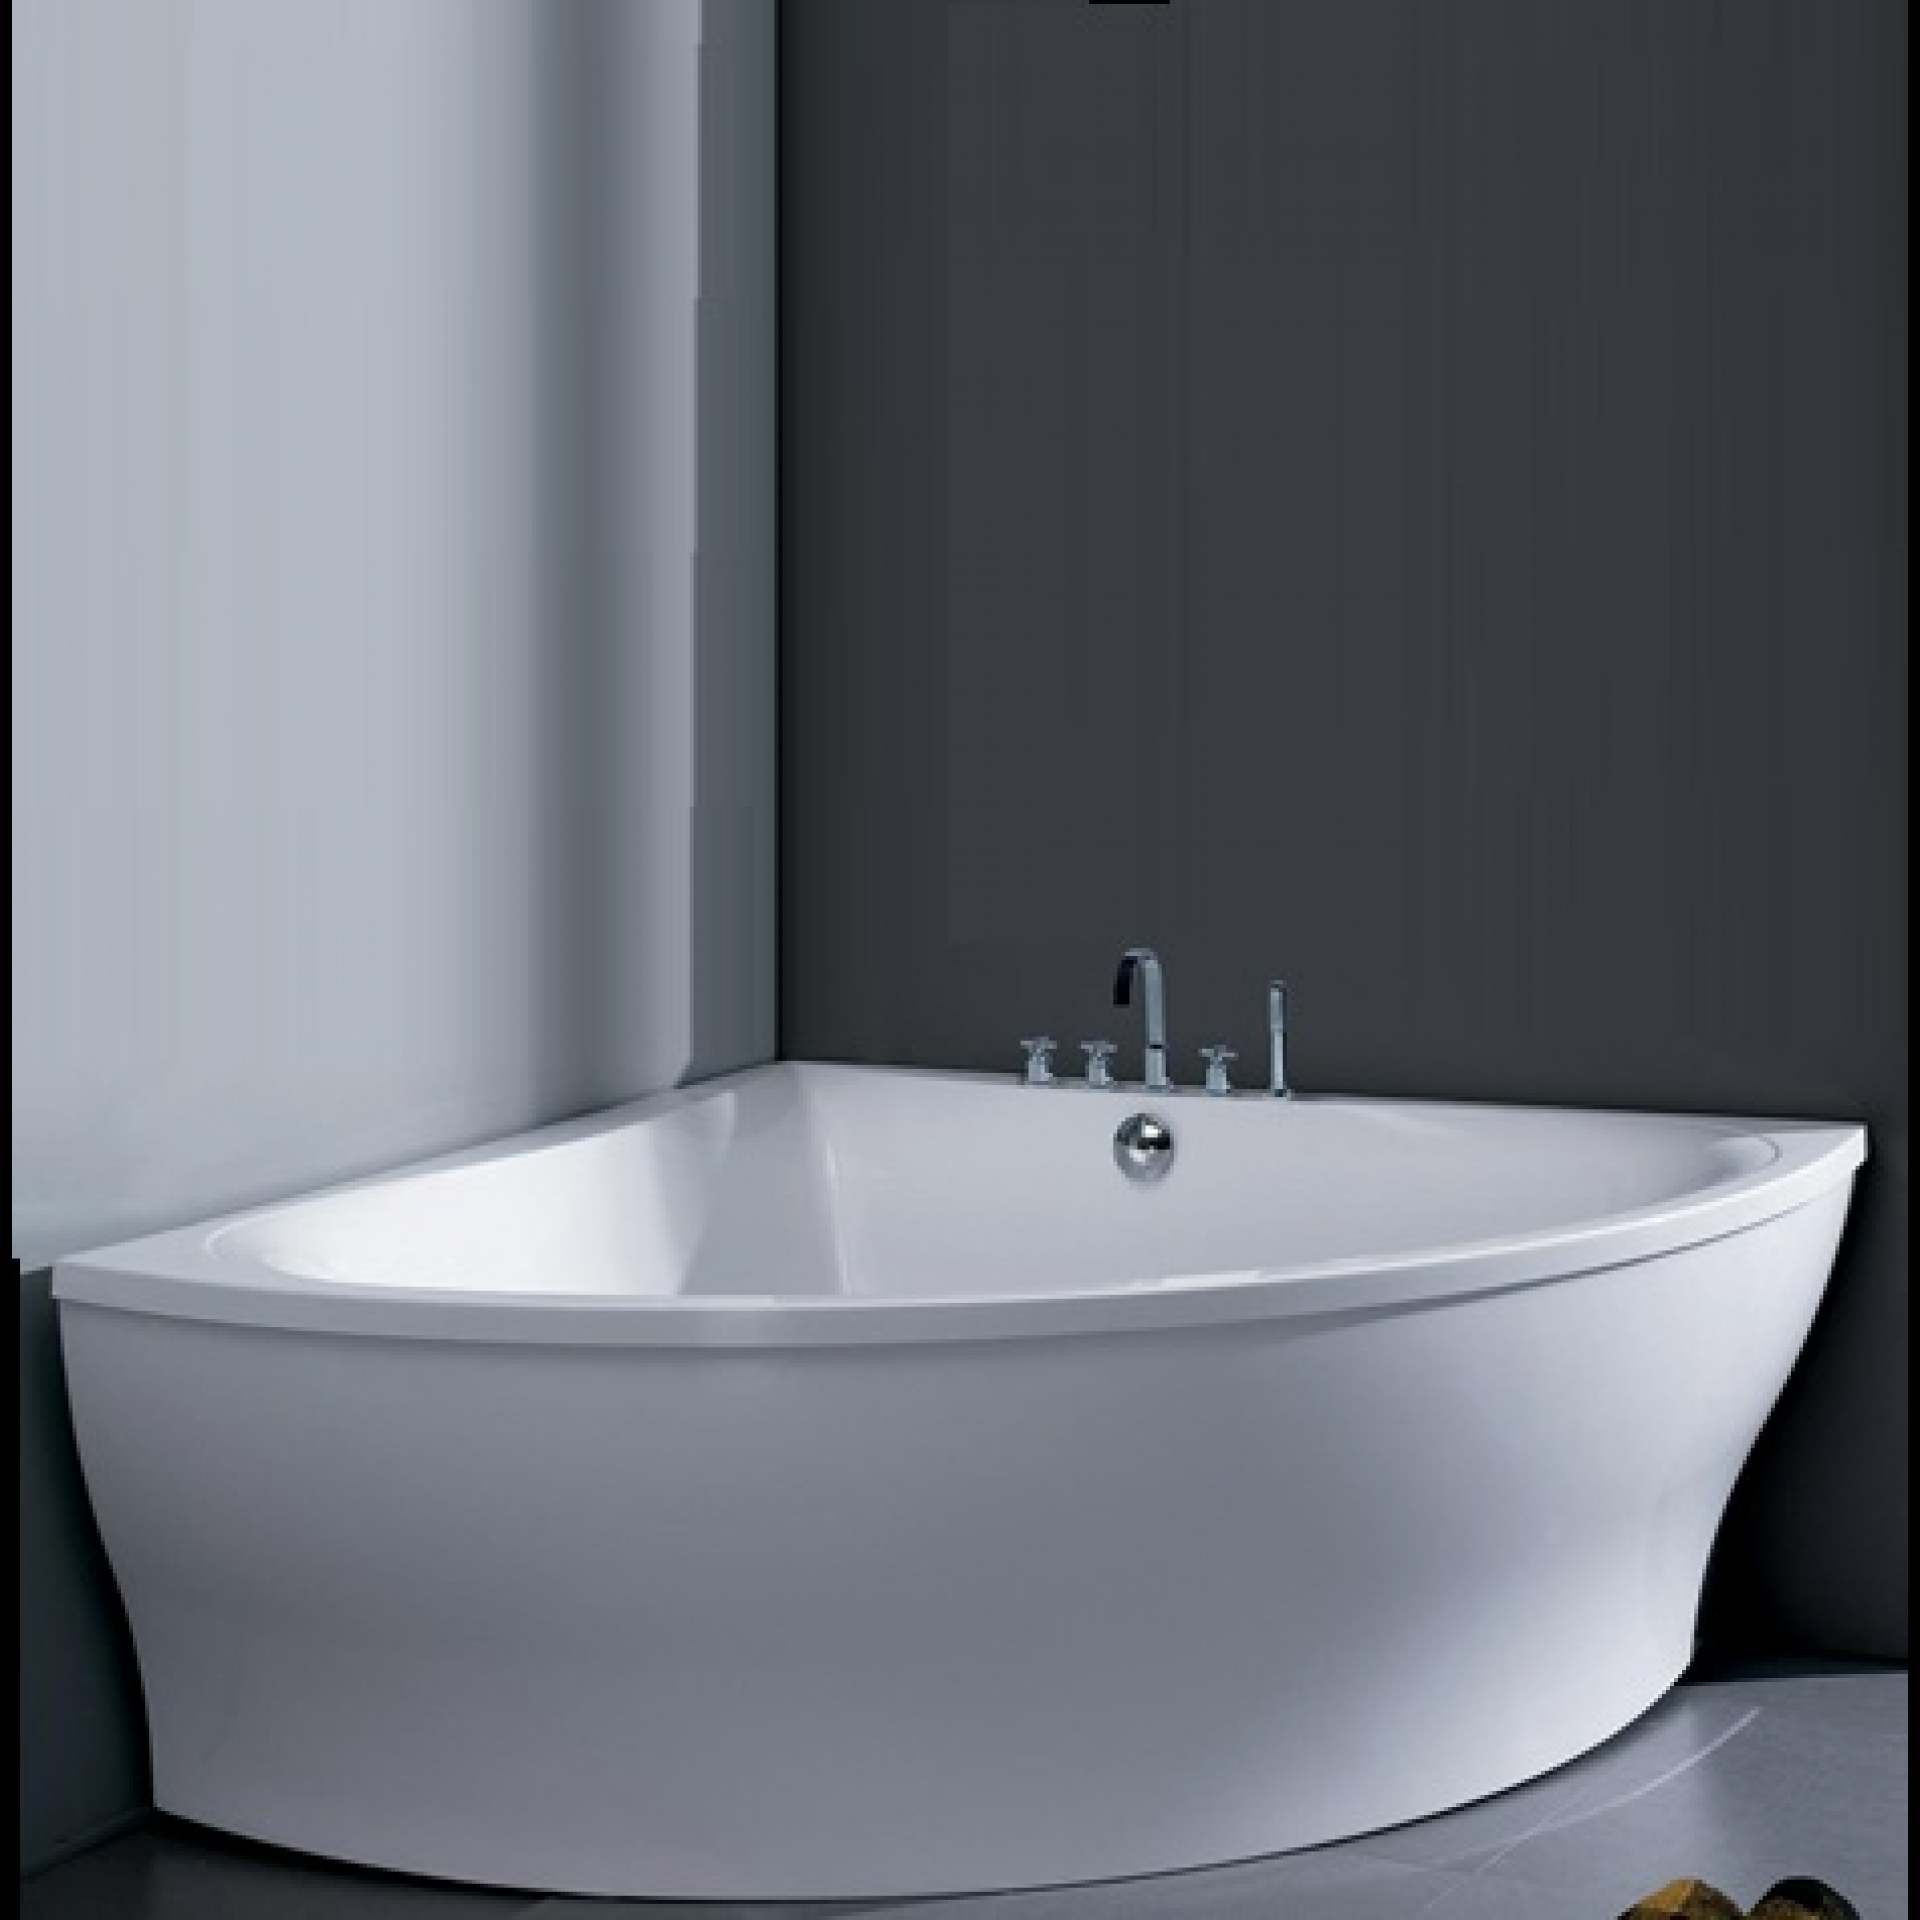 Moda Segno Freestanding Bath 8Mm Thick Acrylic Gloss  Product Delectable Acs Designer Bathrooms Decorating Inspiration